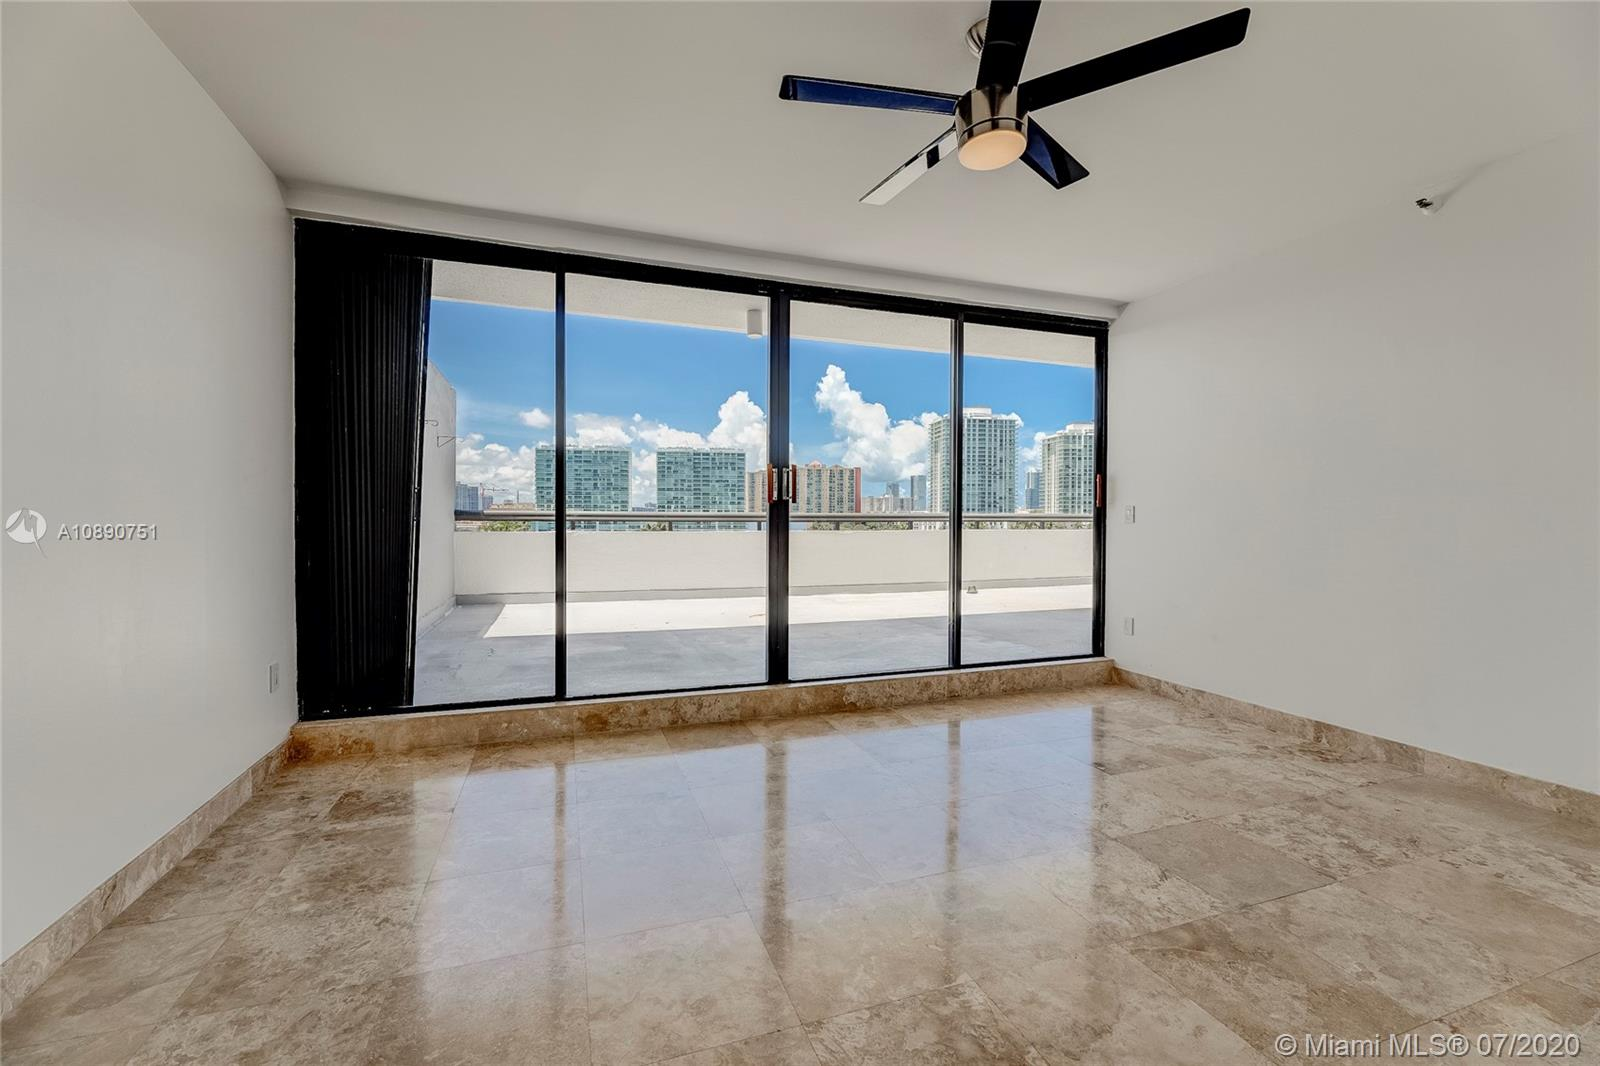 Photo of 425 Poinciana Island Drive #1444, Sunny Isles Beach, Florida, 33160 - Entrance to primary bedroom with view to en suite dressing area